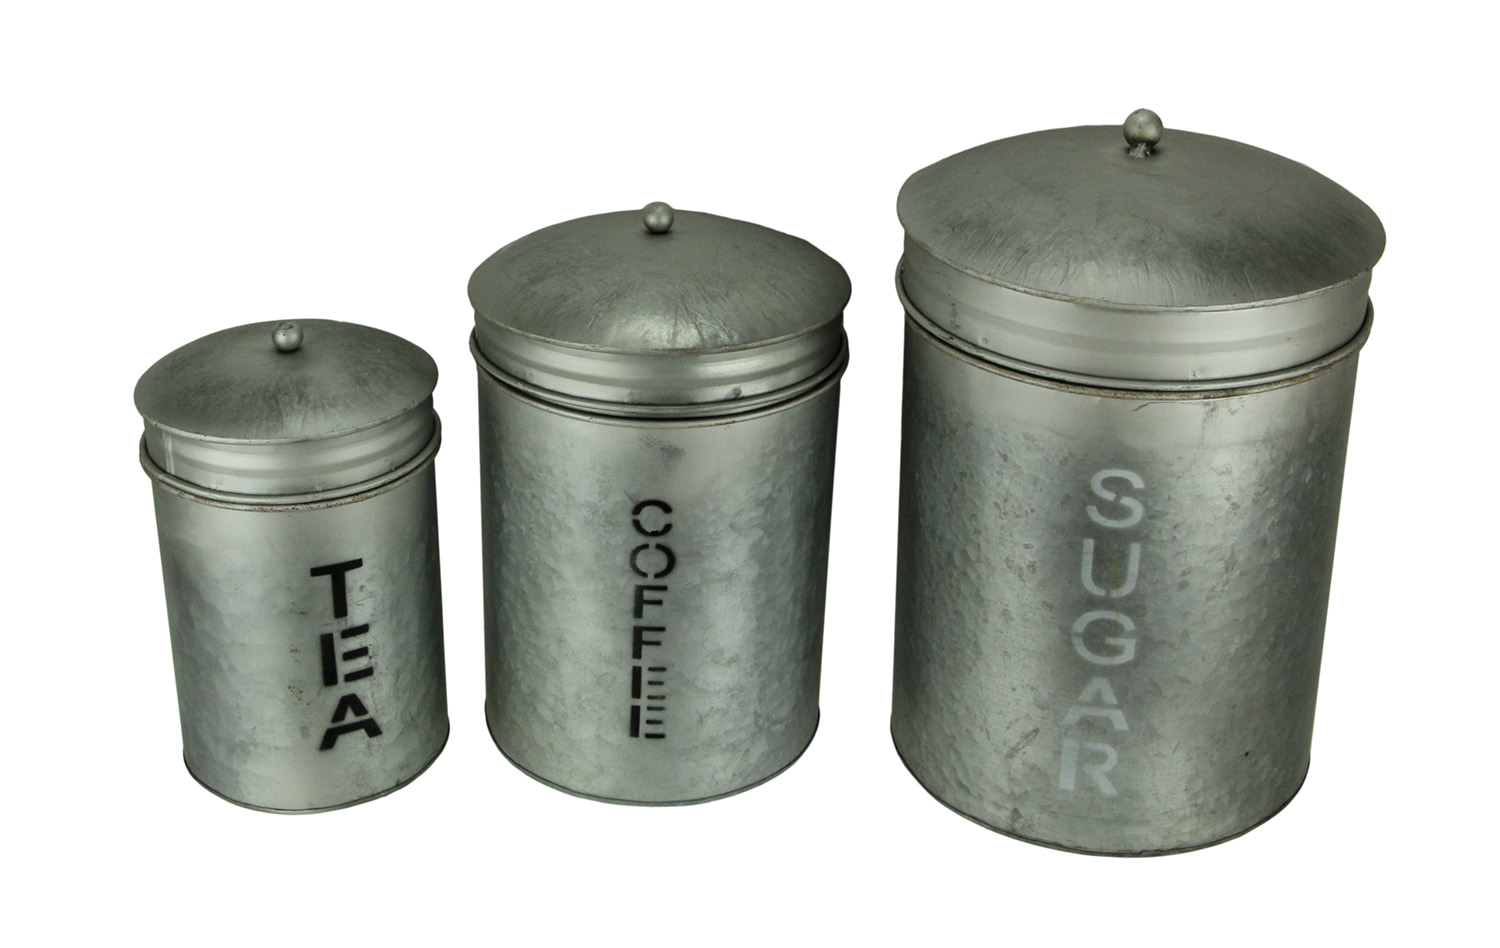 Details about Grey Galvanized Finish Metal Sugar Coffee Tea Kitchen  Canister Set